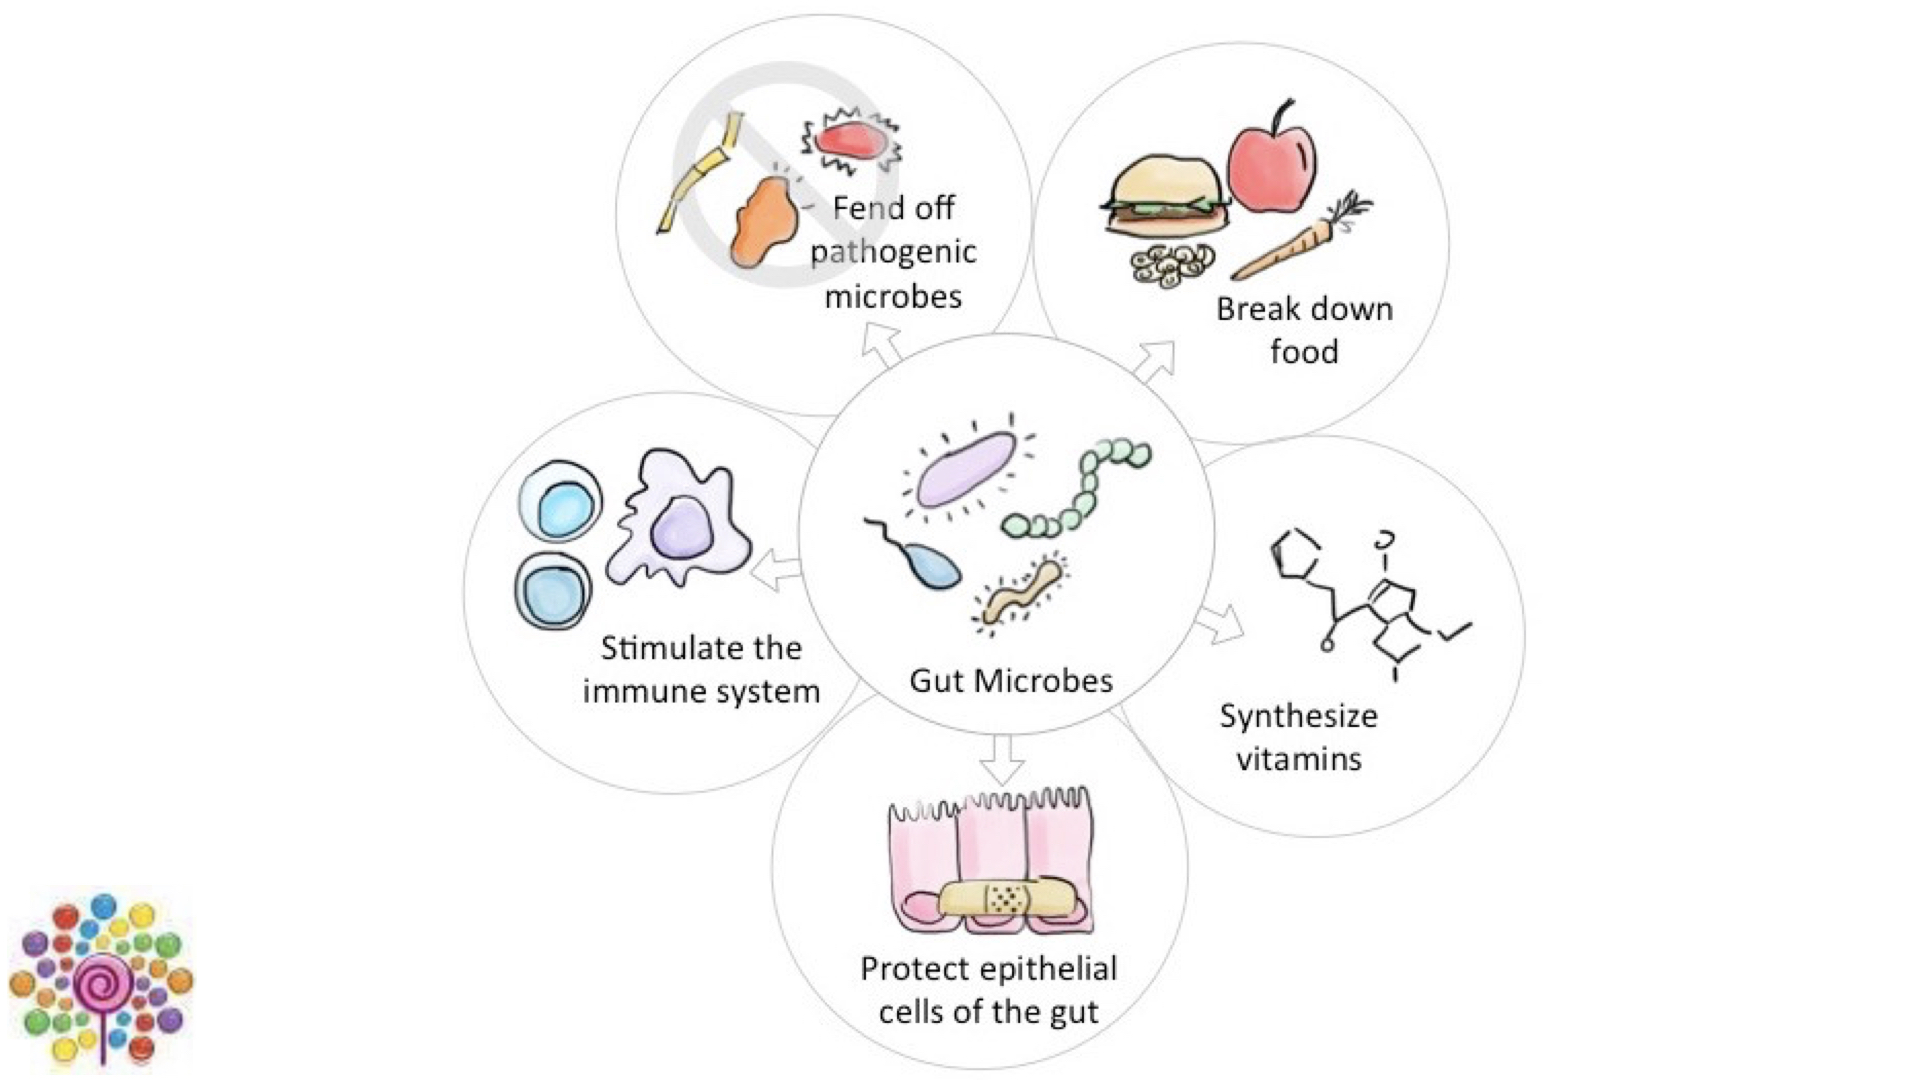 Some of the benefits of probiotics to health.